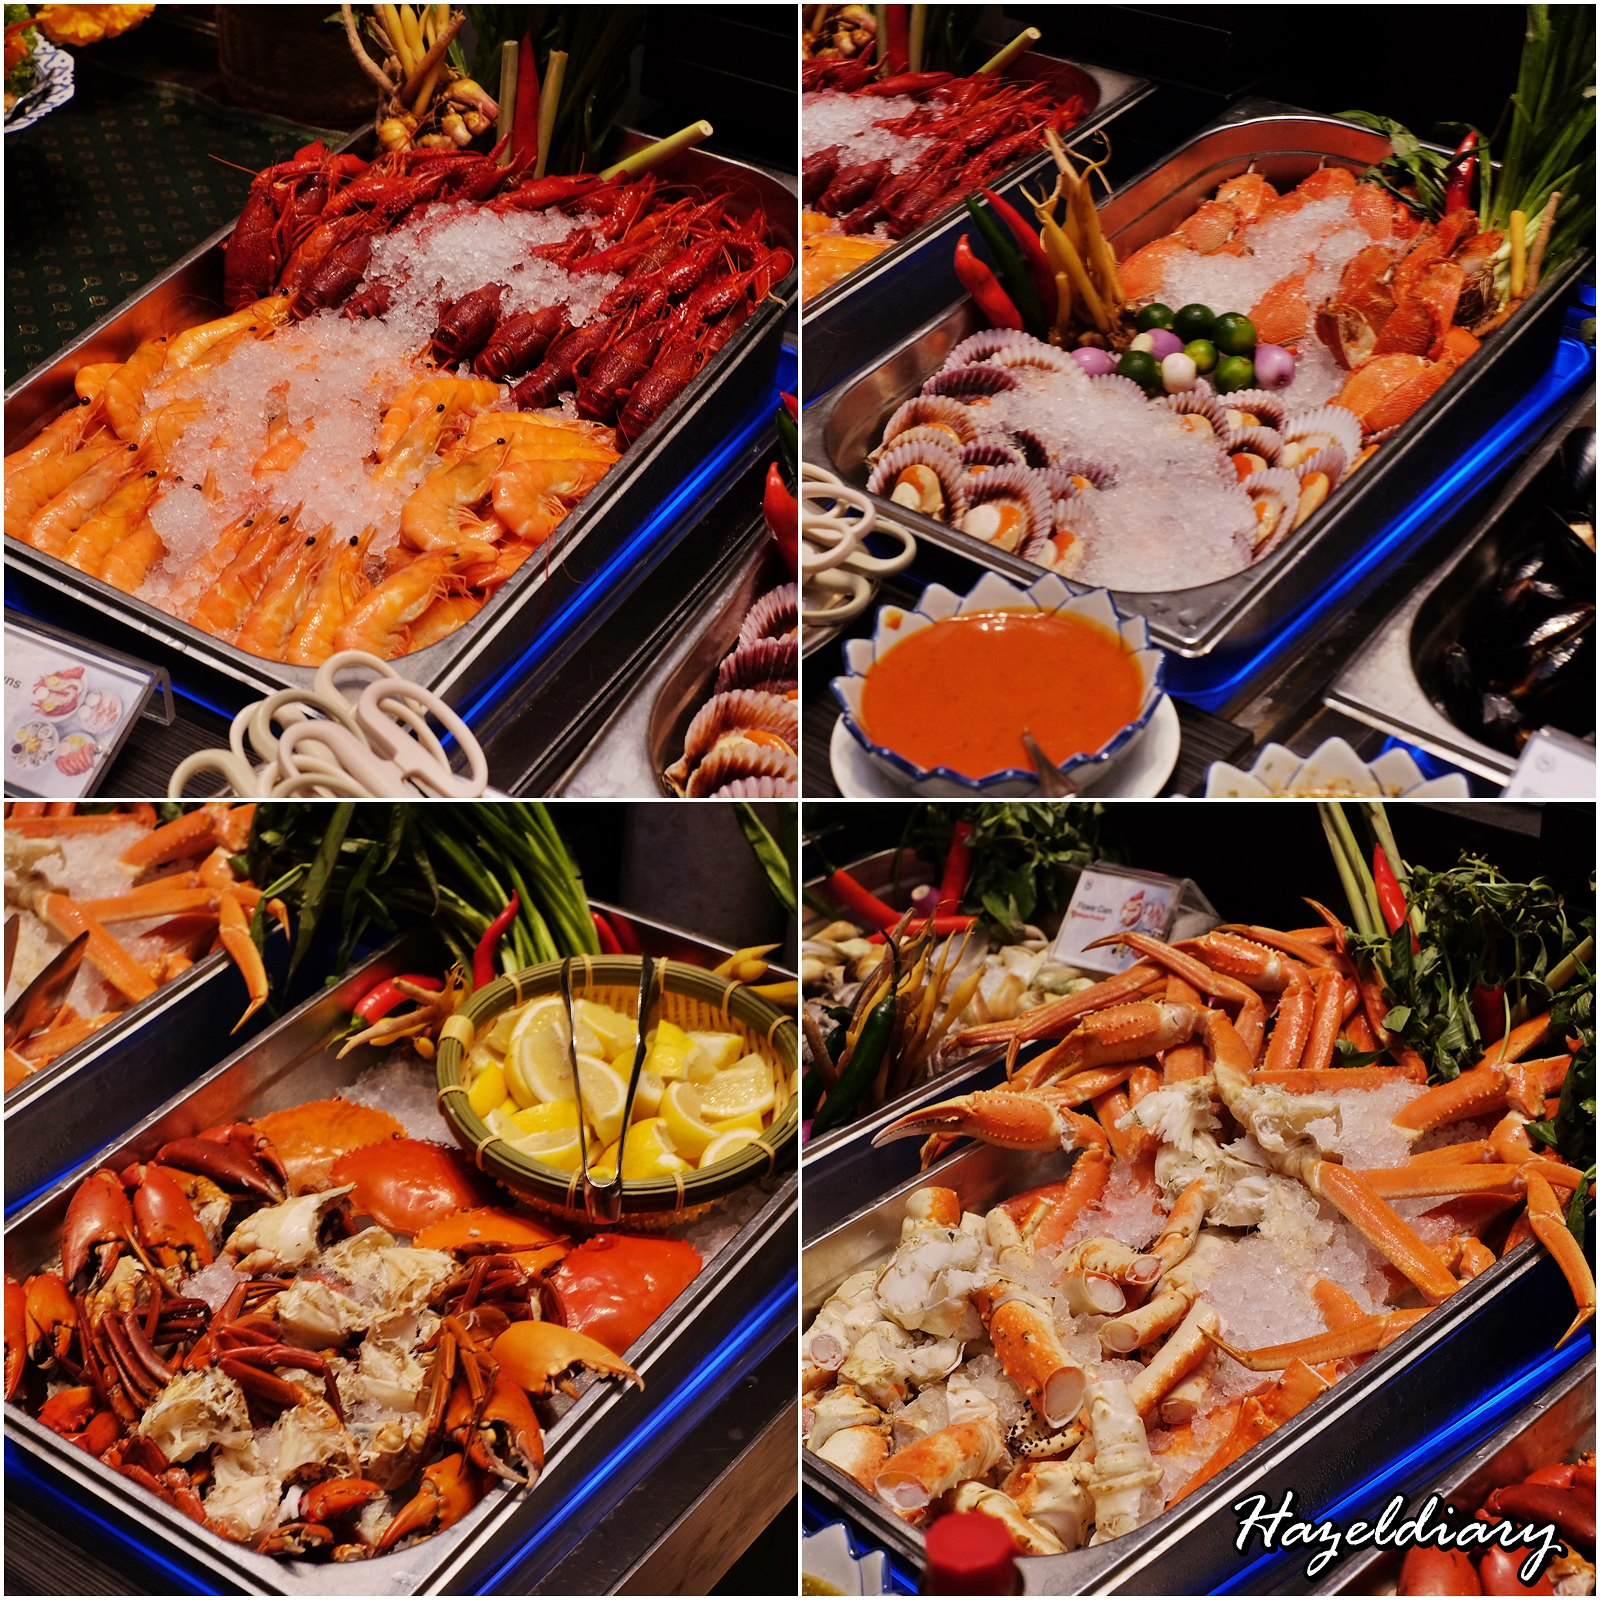 EnThaising Siam-The Dining Room Sheraton Towers Singapore-Fresh Seafood